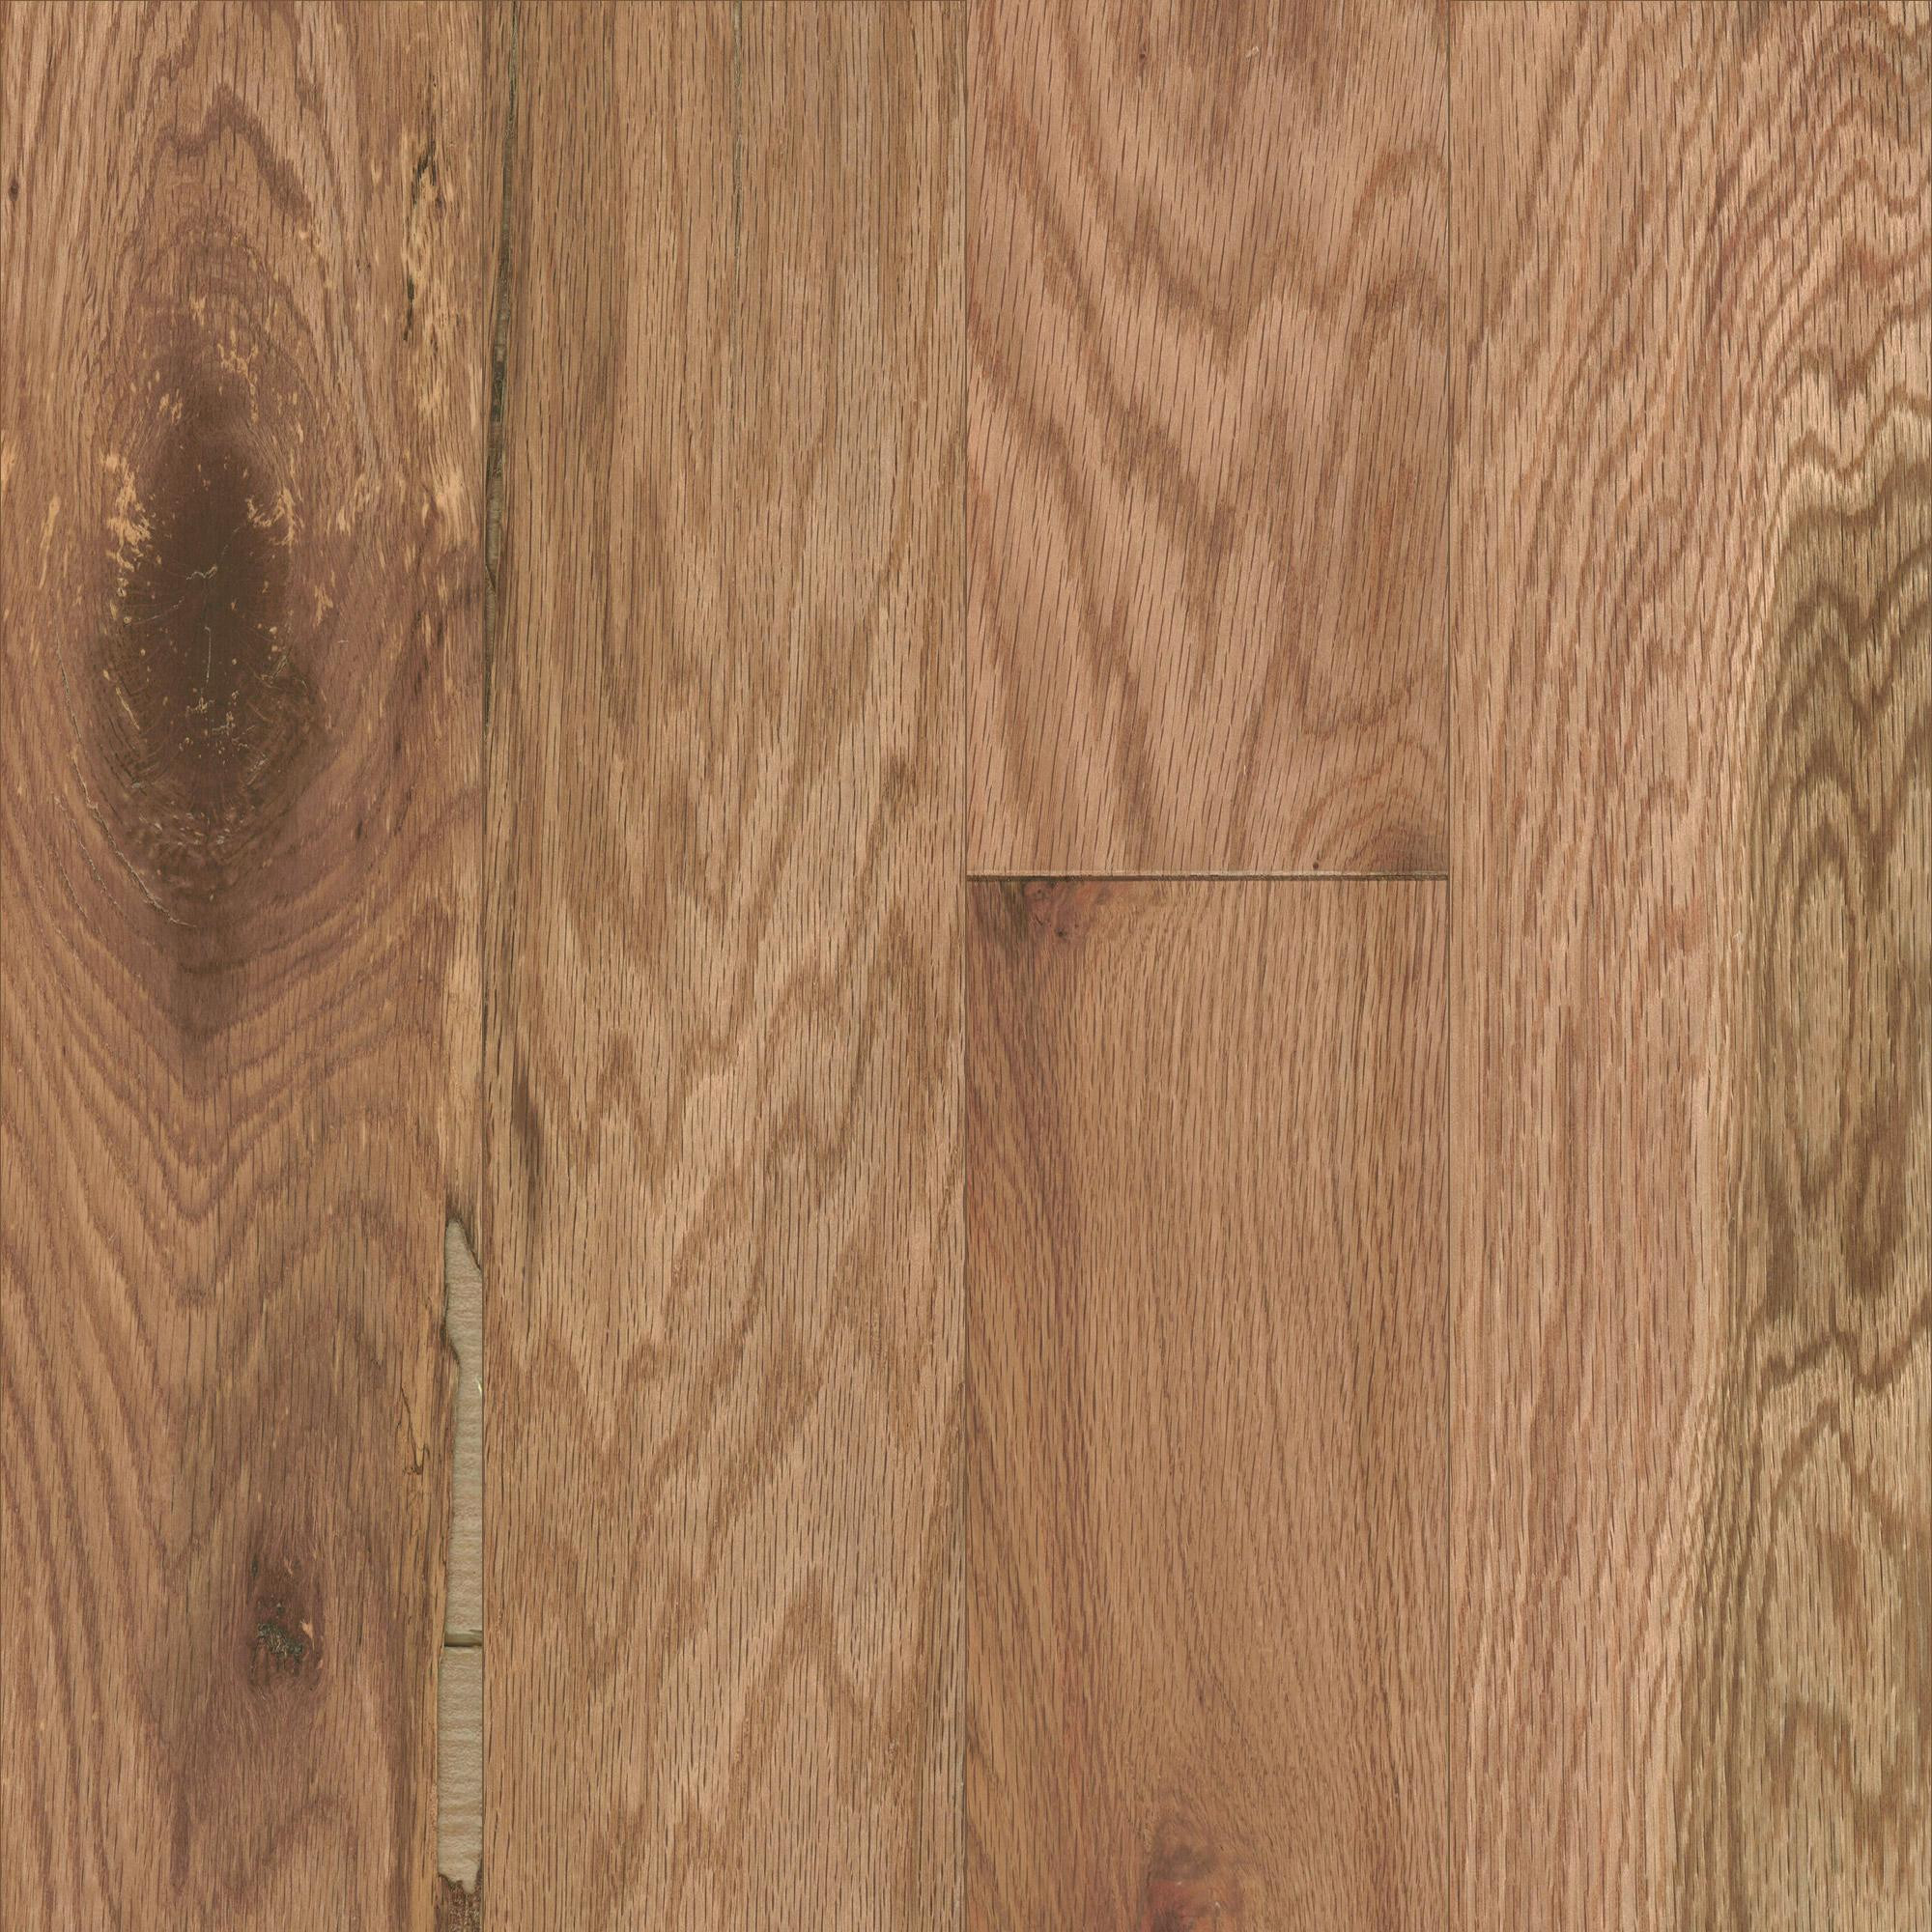 solid hardwood vs engineered hardwood vs laminate flooring of mullican ridgecrest red oak natural 1 2 thick 5 wide engineered intended for mullican ridgecrest red oak natural 1 2 thick 5 wide engineered hardwood flooring